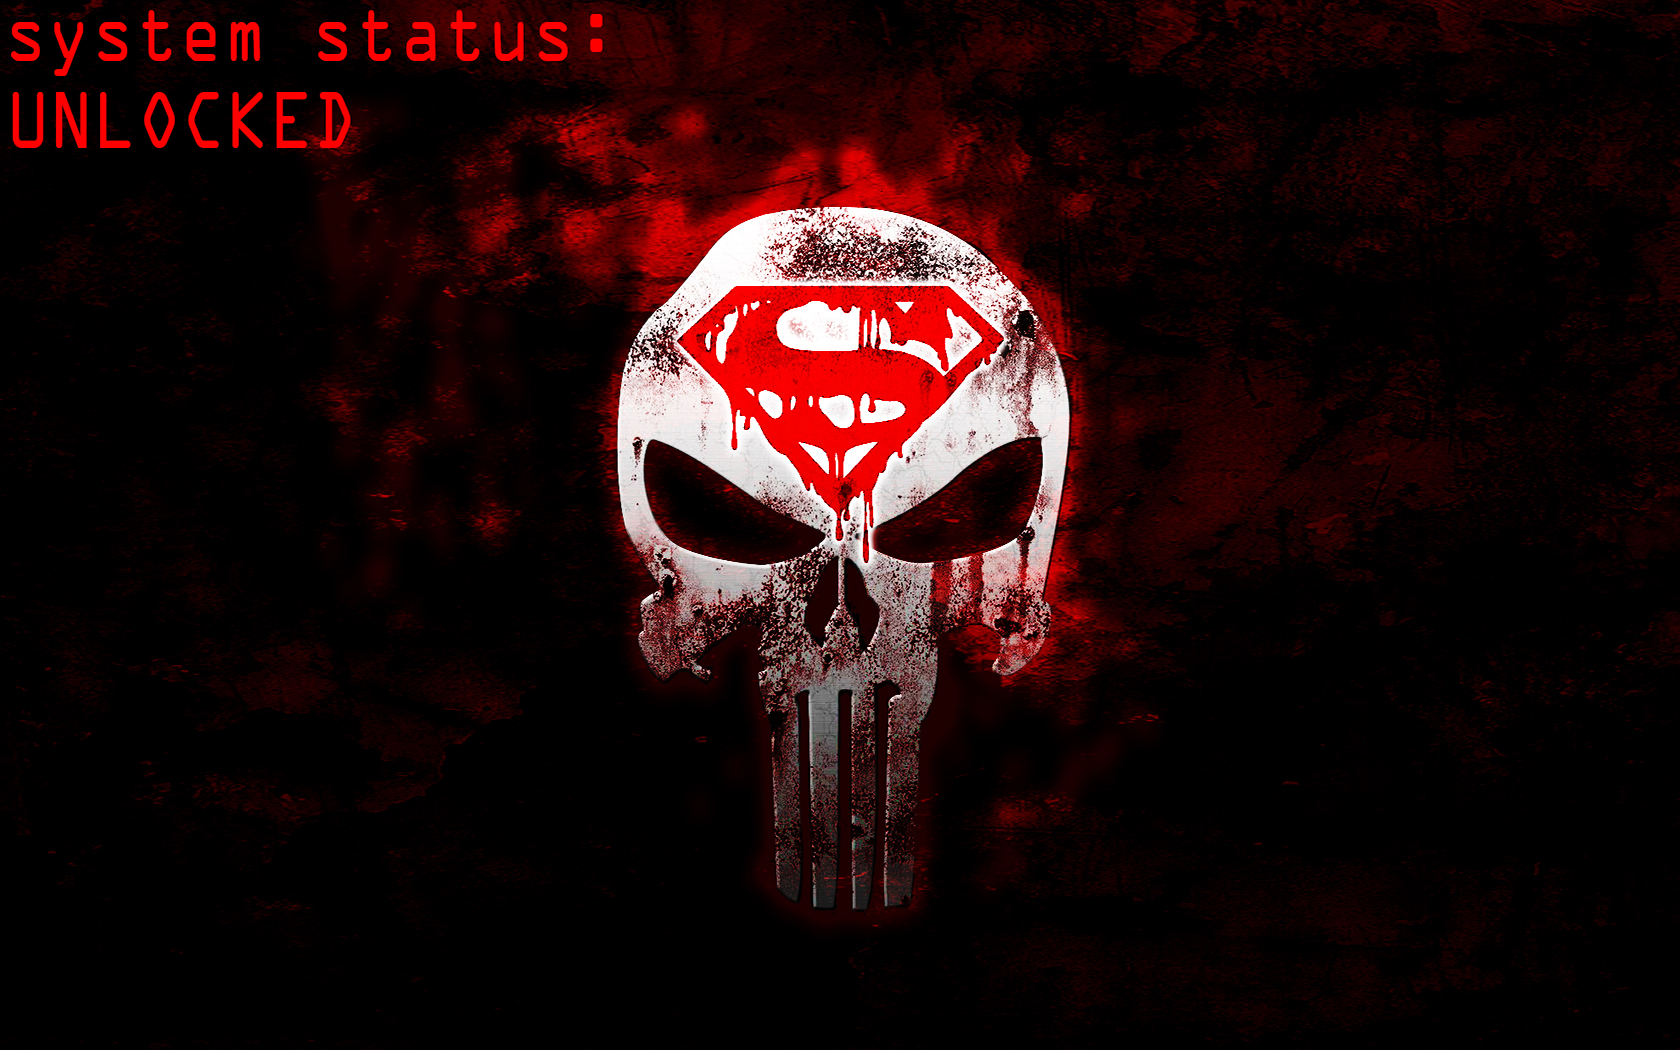 superman/punisher logo wallpapers1nwithm3 on deviantart